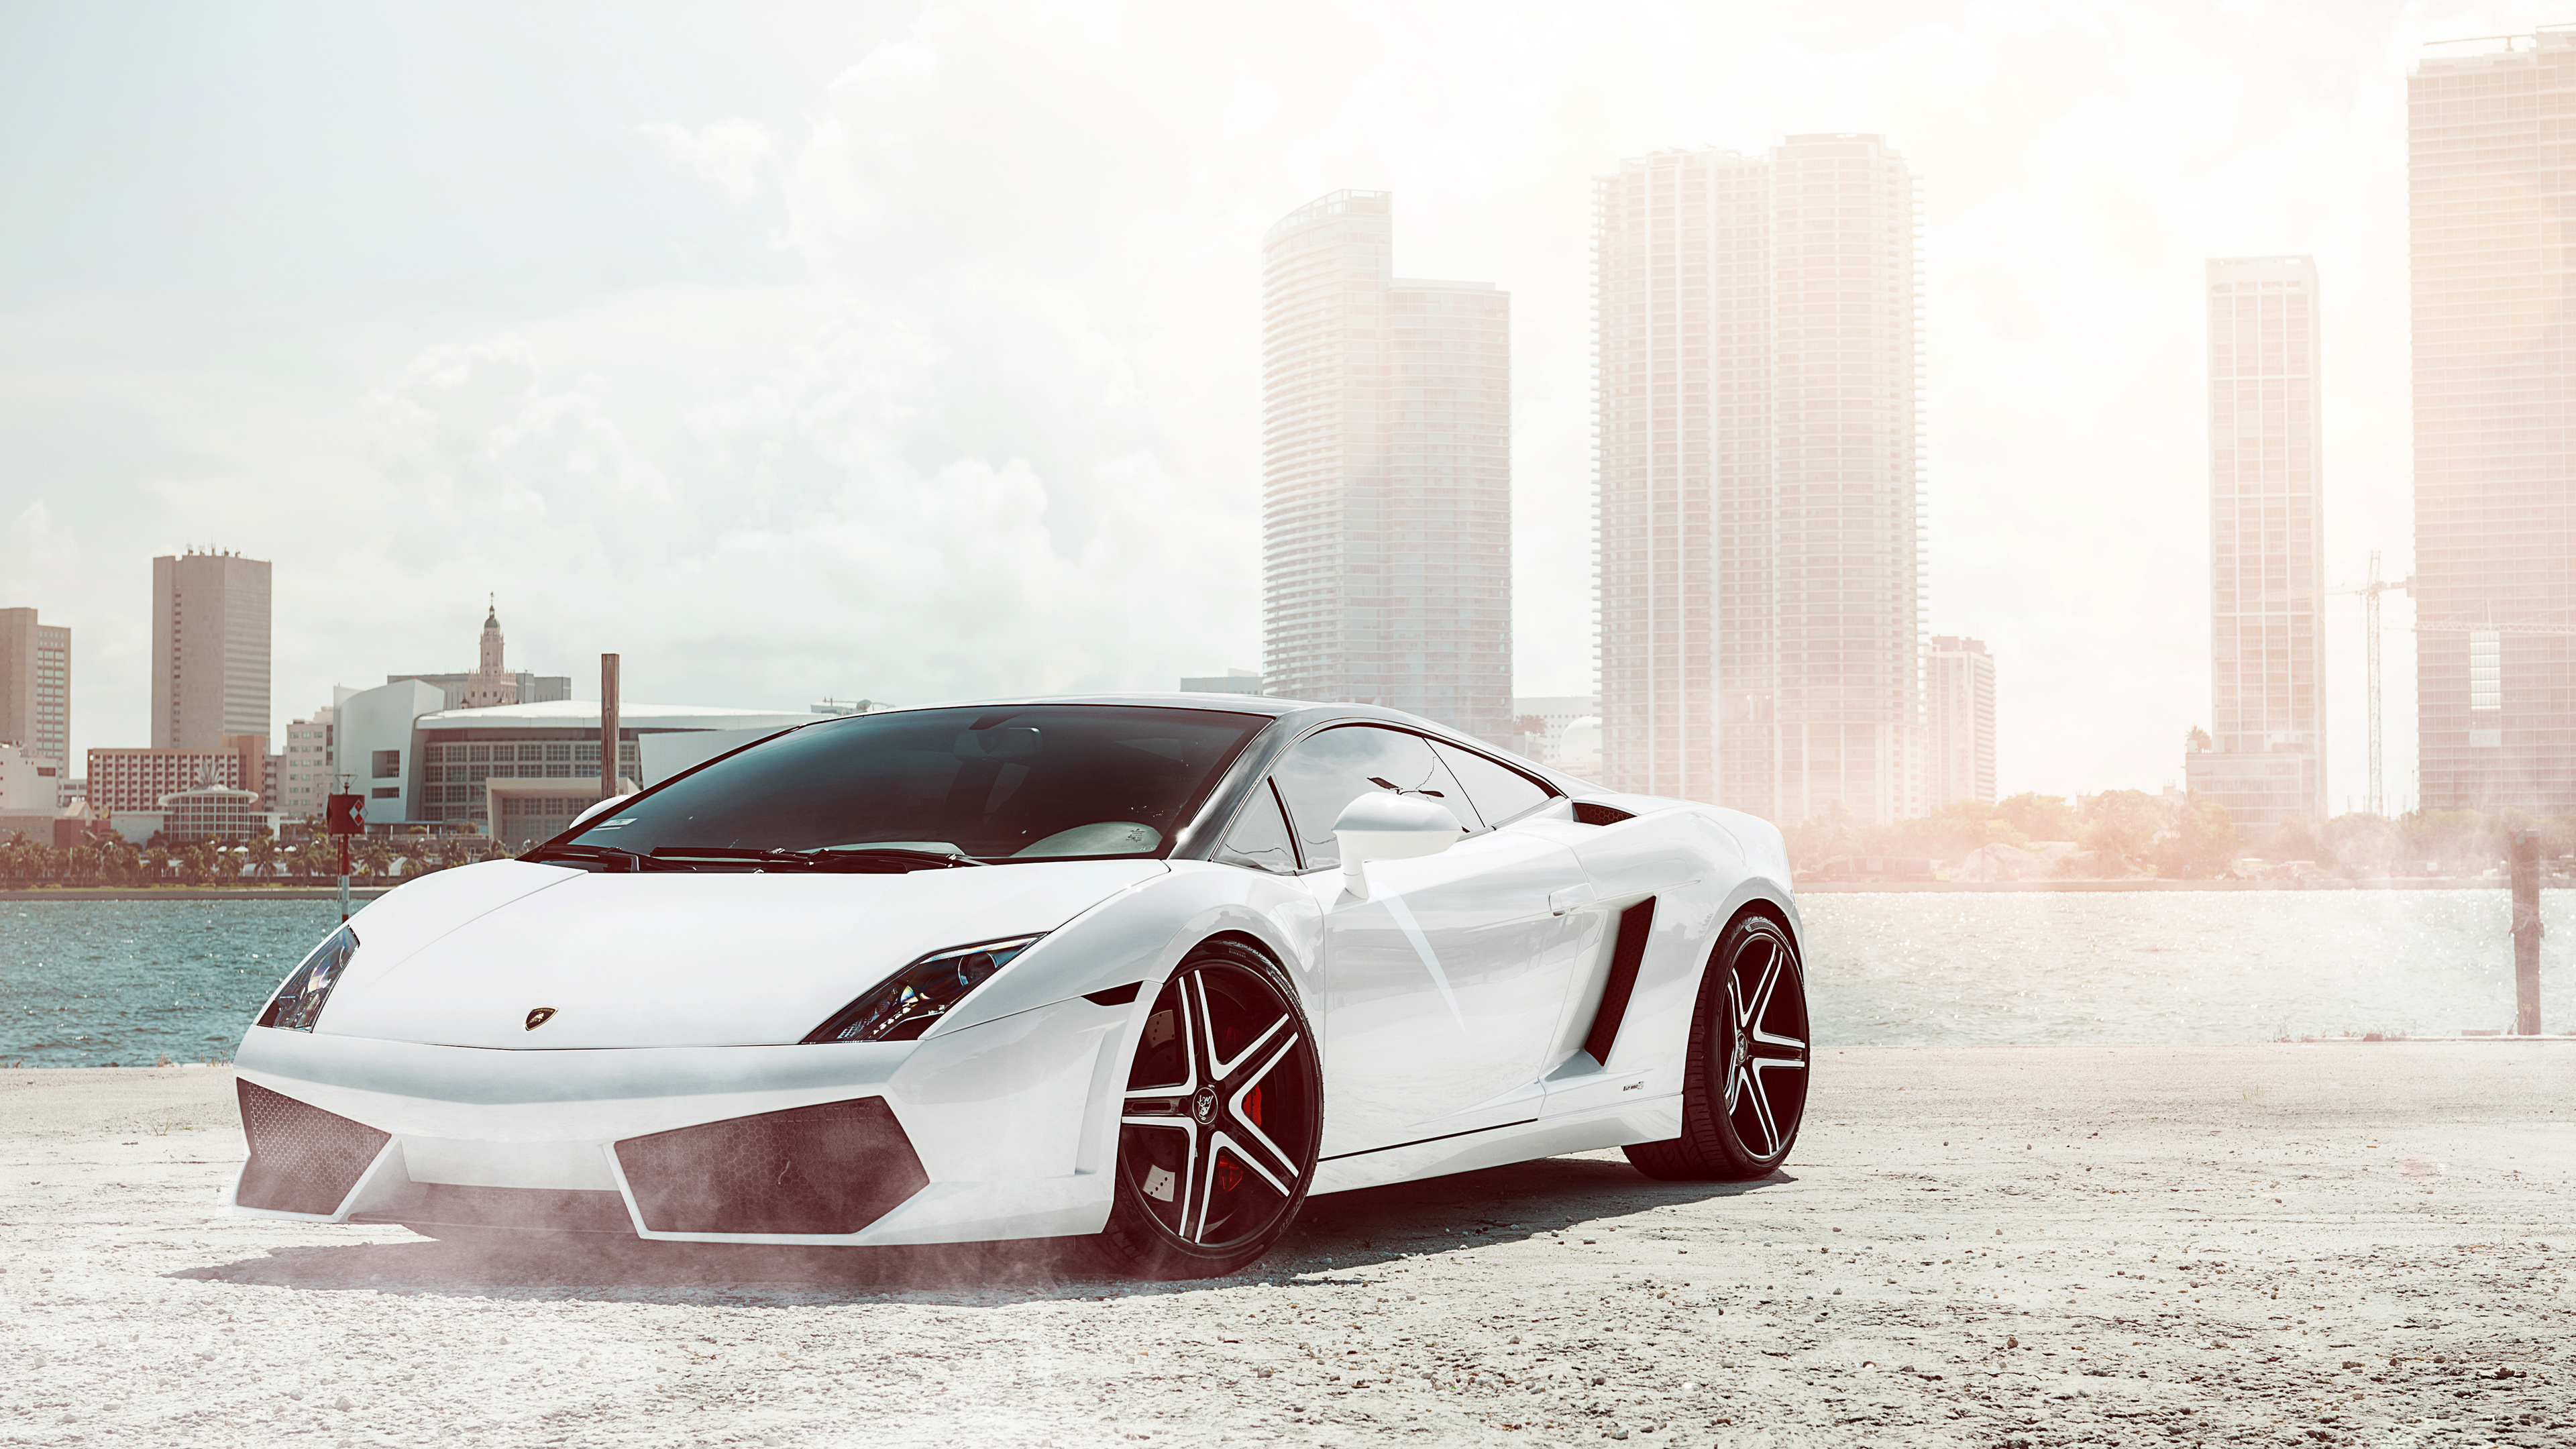 Tags: Lamborghini Gallardo White